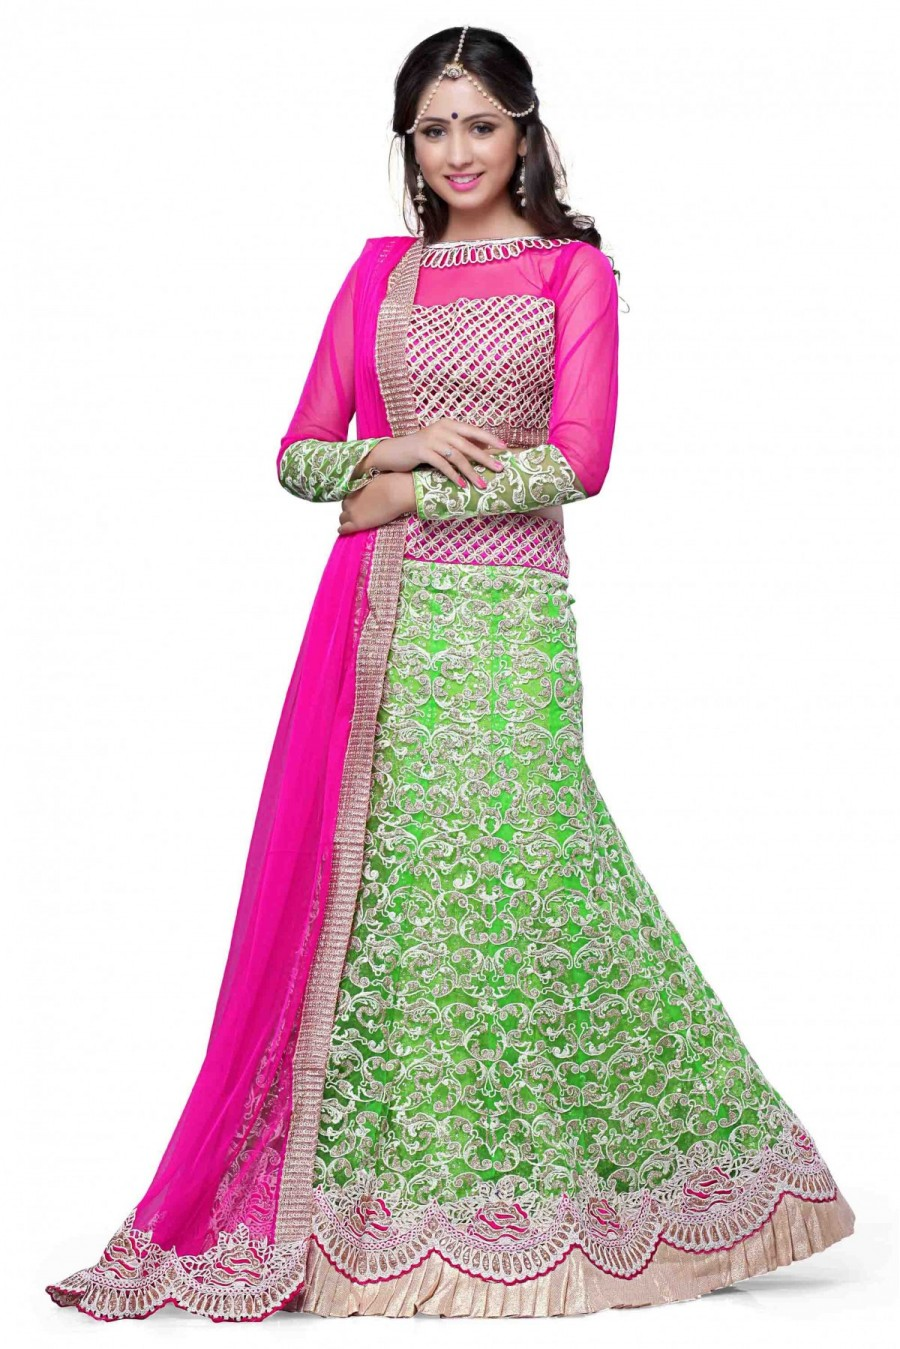 e5deee9467 Shop for Net Party Wear Lehenga Choli in Green and Pink Colour   547235